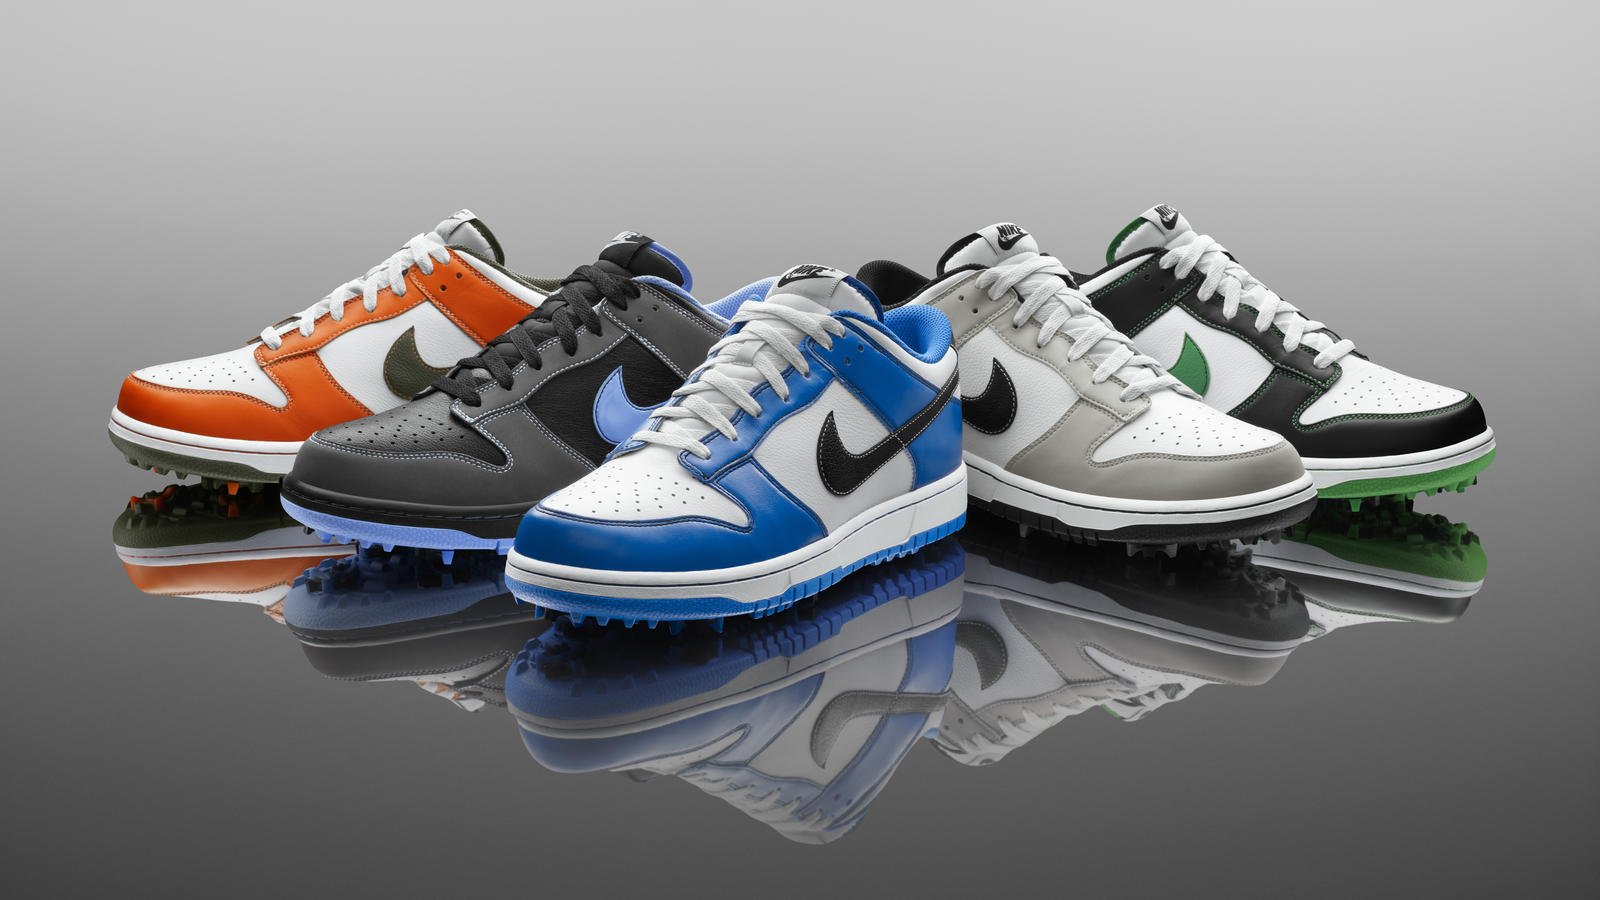 official photos 9993a 3e176 Nike Golf Pays Tribute to the Iconic Nike Dunk Shoe - Nike News